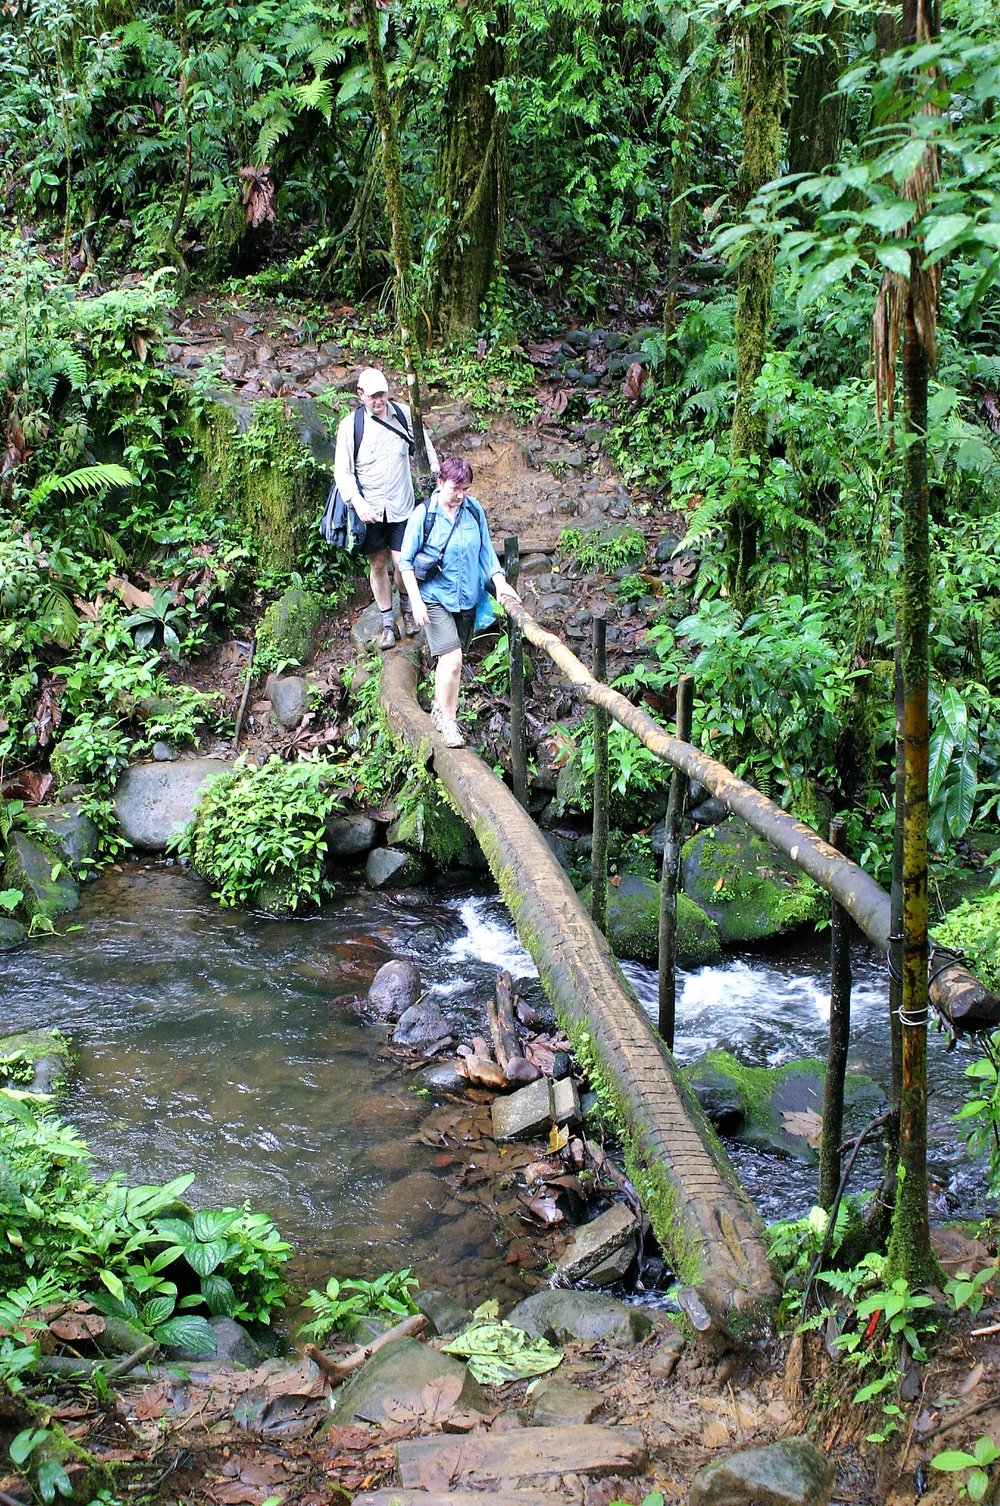 Hiking with Sentir Costa Rica